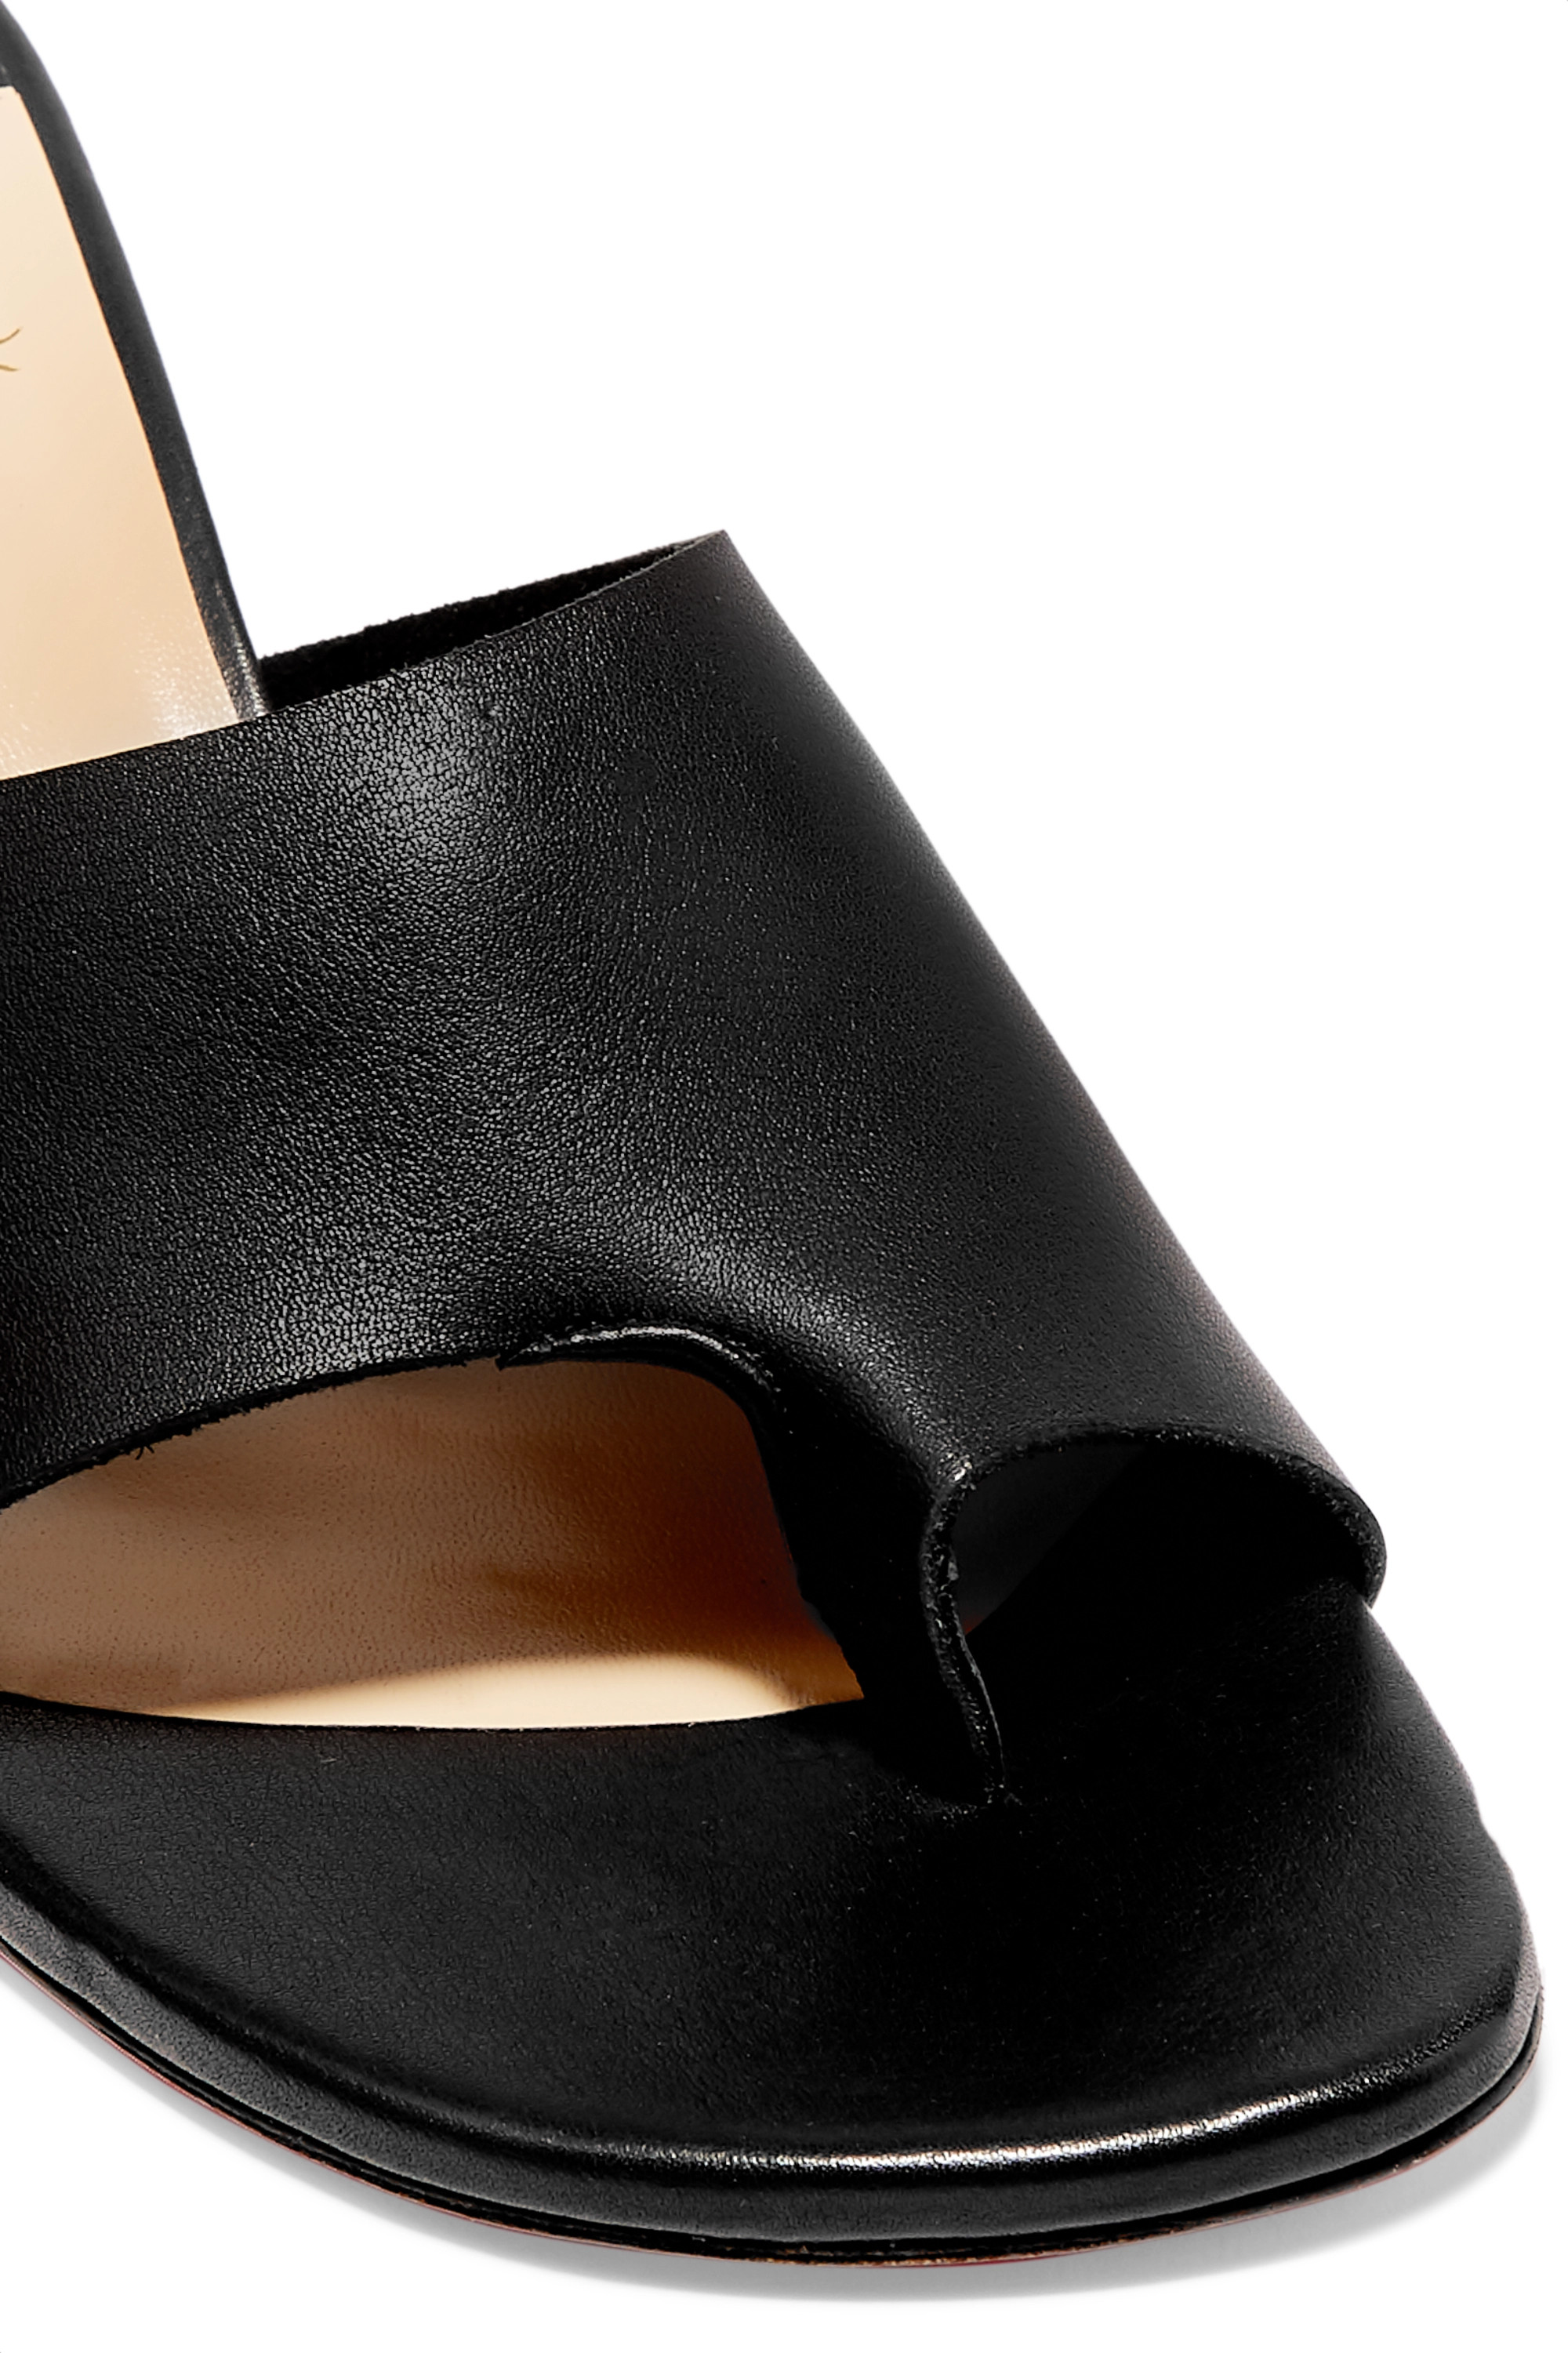 Christian Louboutin Viberta 55 leather mules